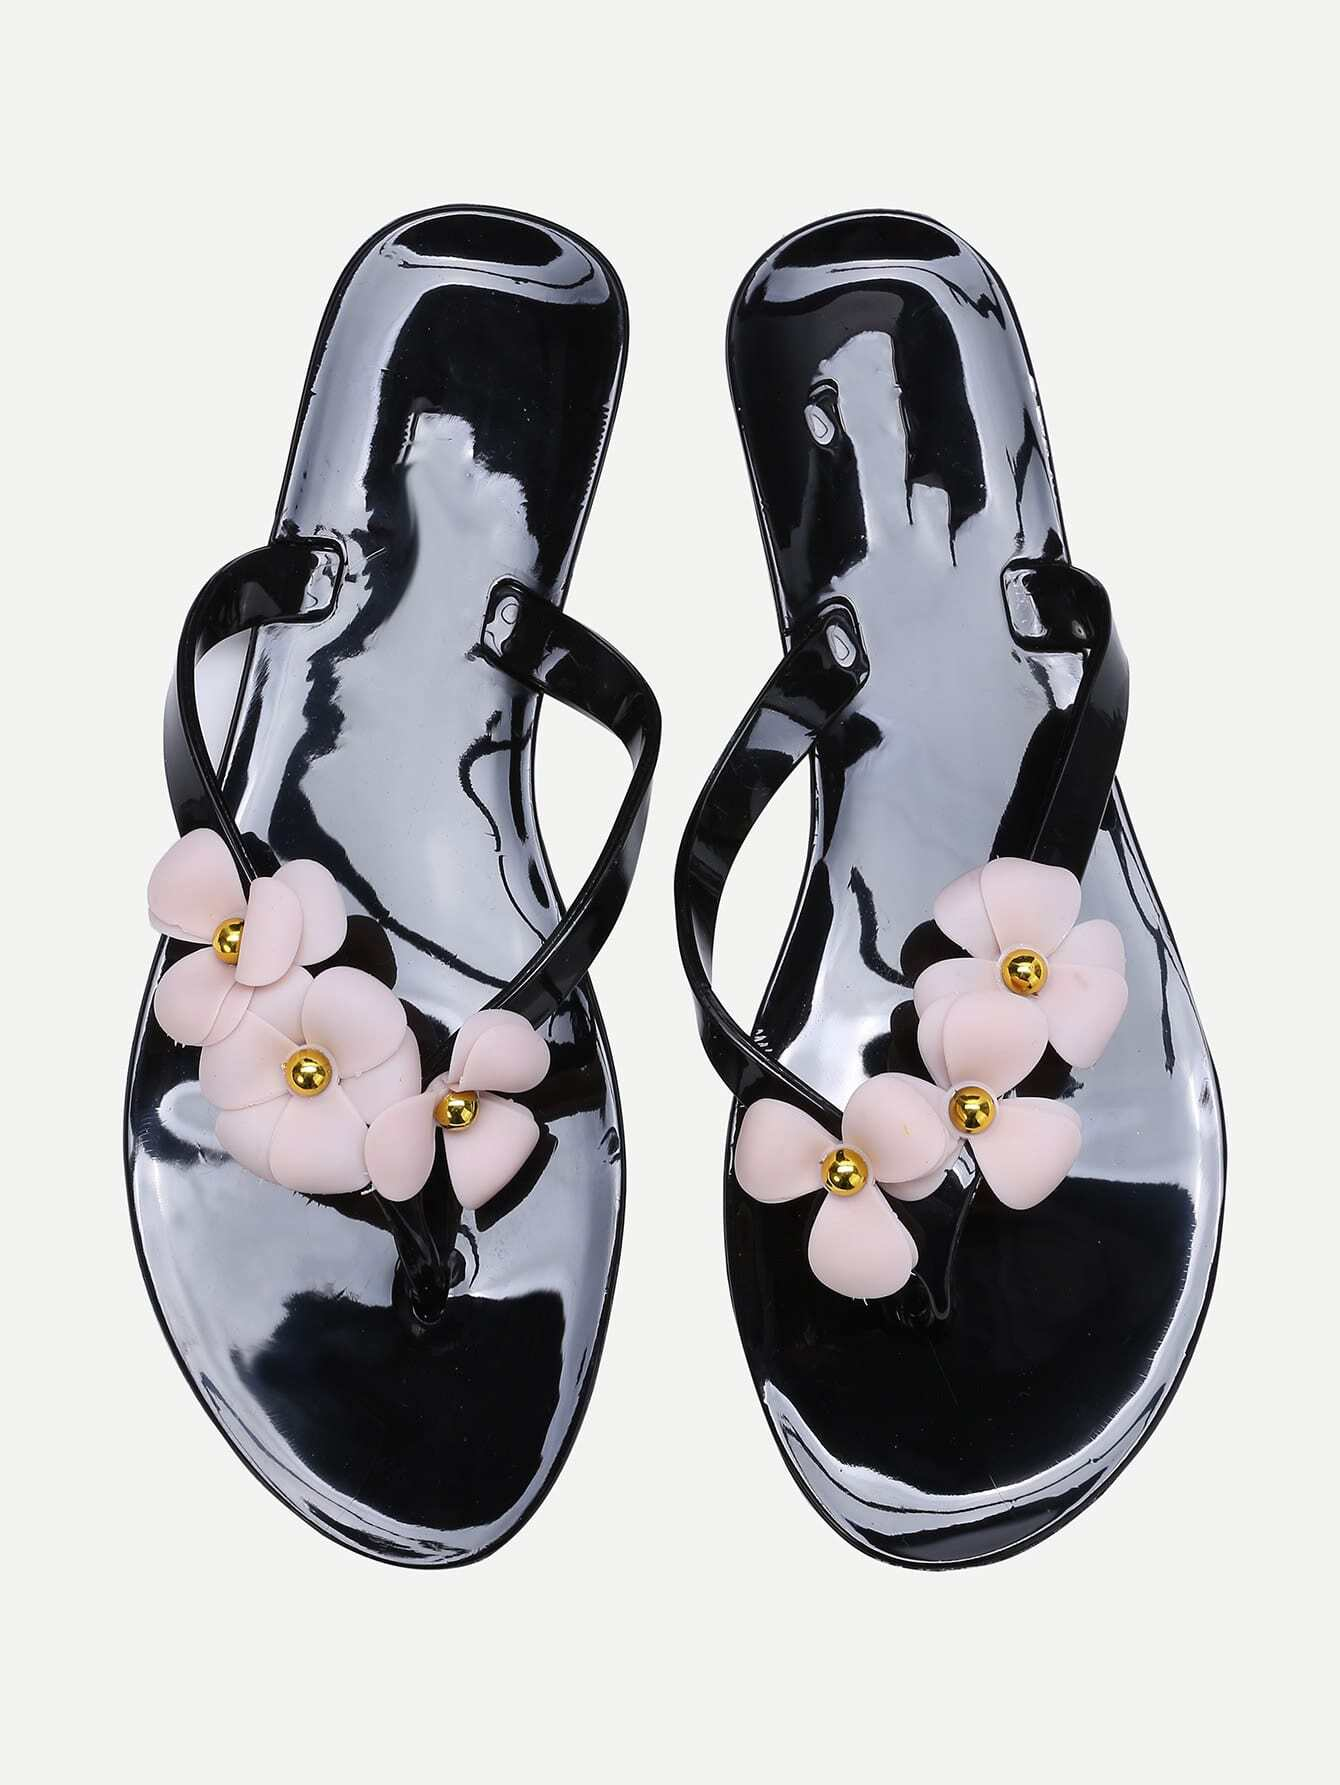 Black Flower Embellished Flip-Flops shoes170309807